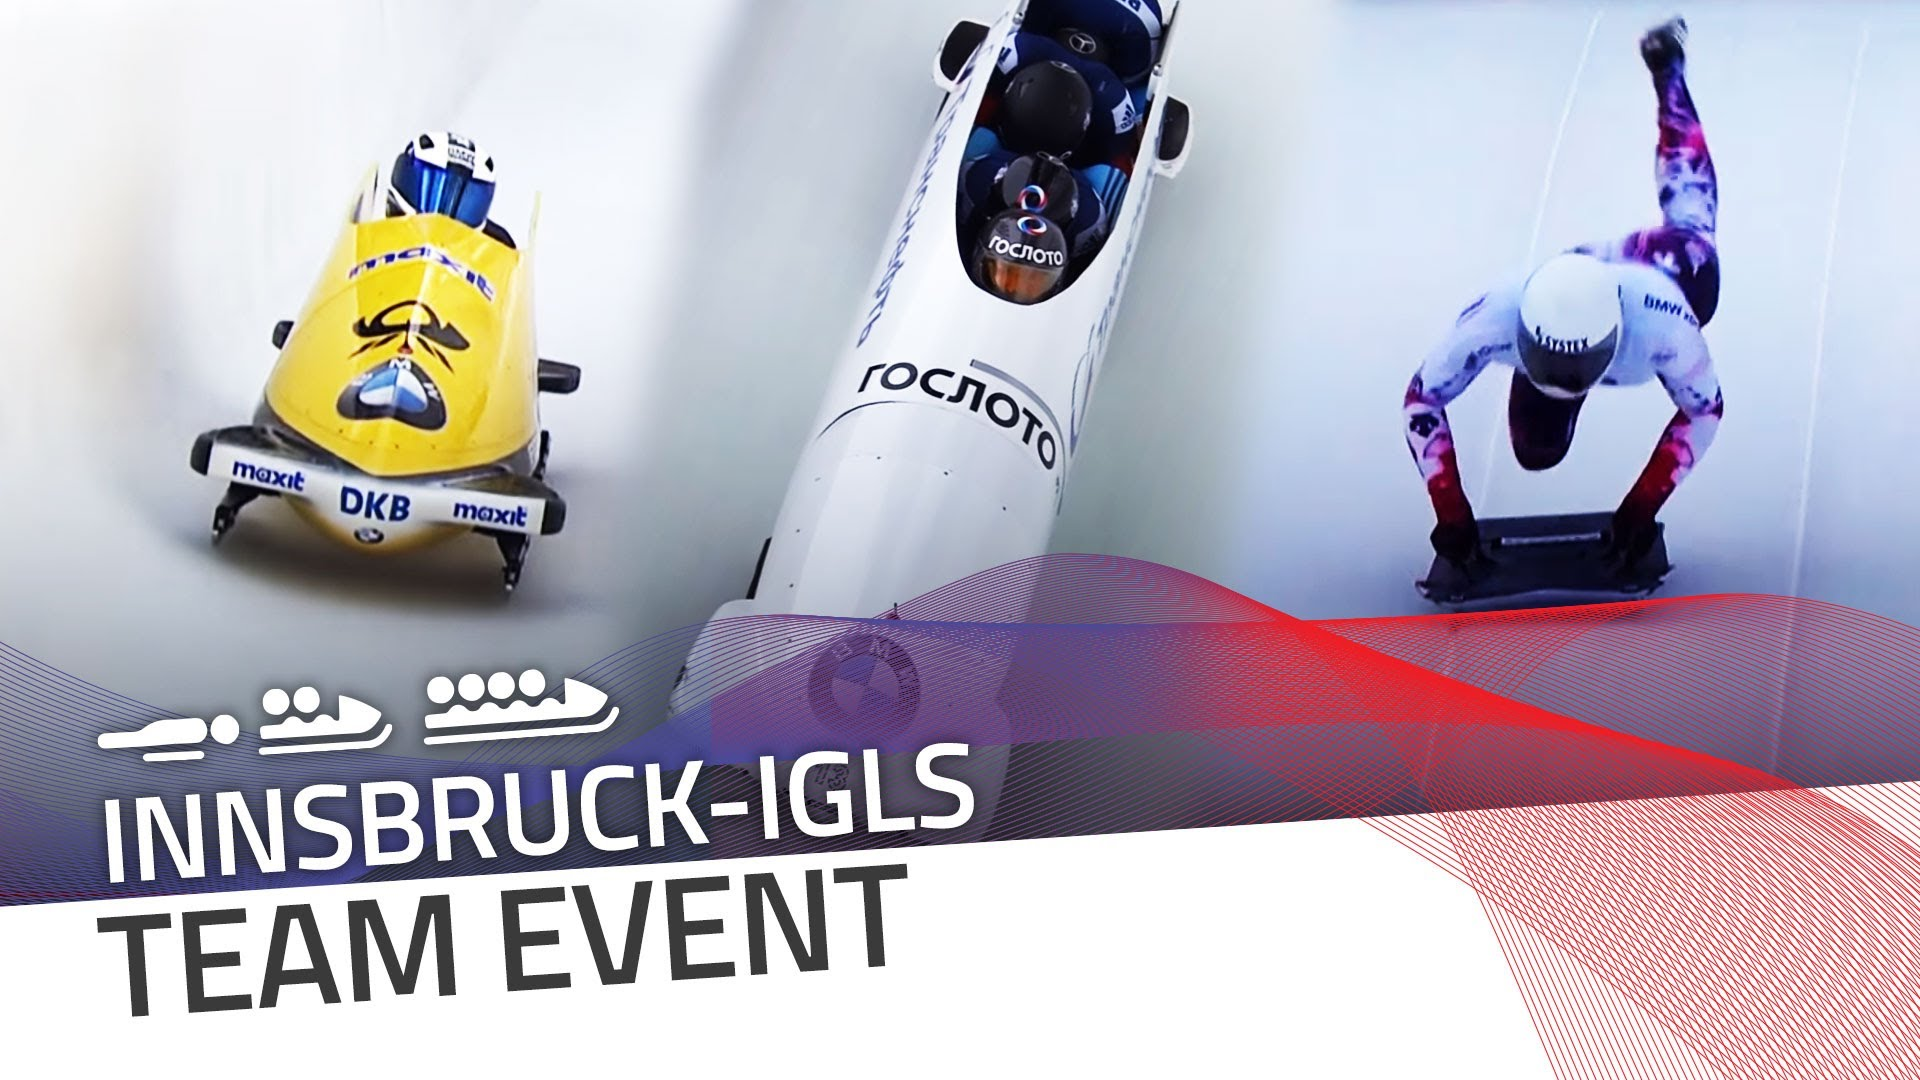 Innsbruck-igls | bmw ibsf world championships 2016 - team event | ibsf official